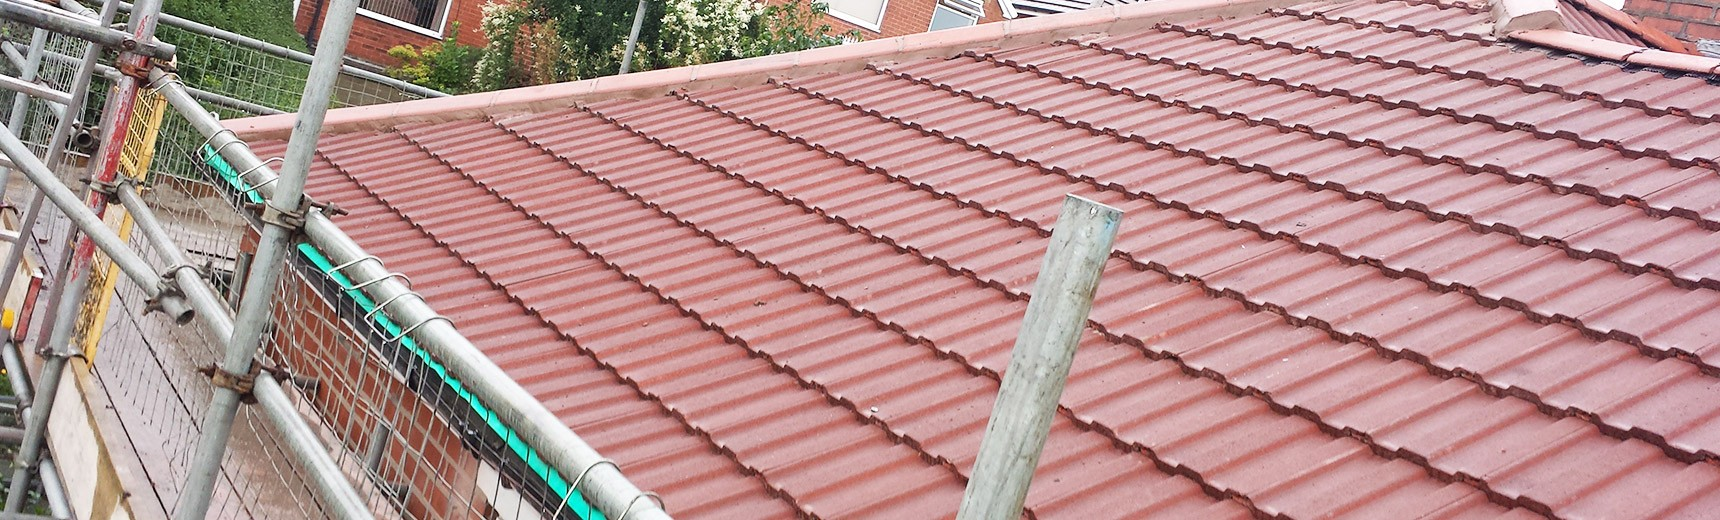 Laying down clay roof tiles